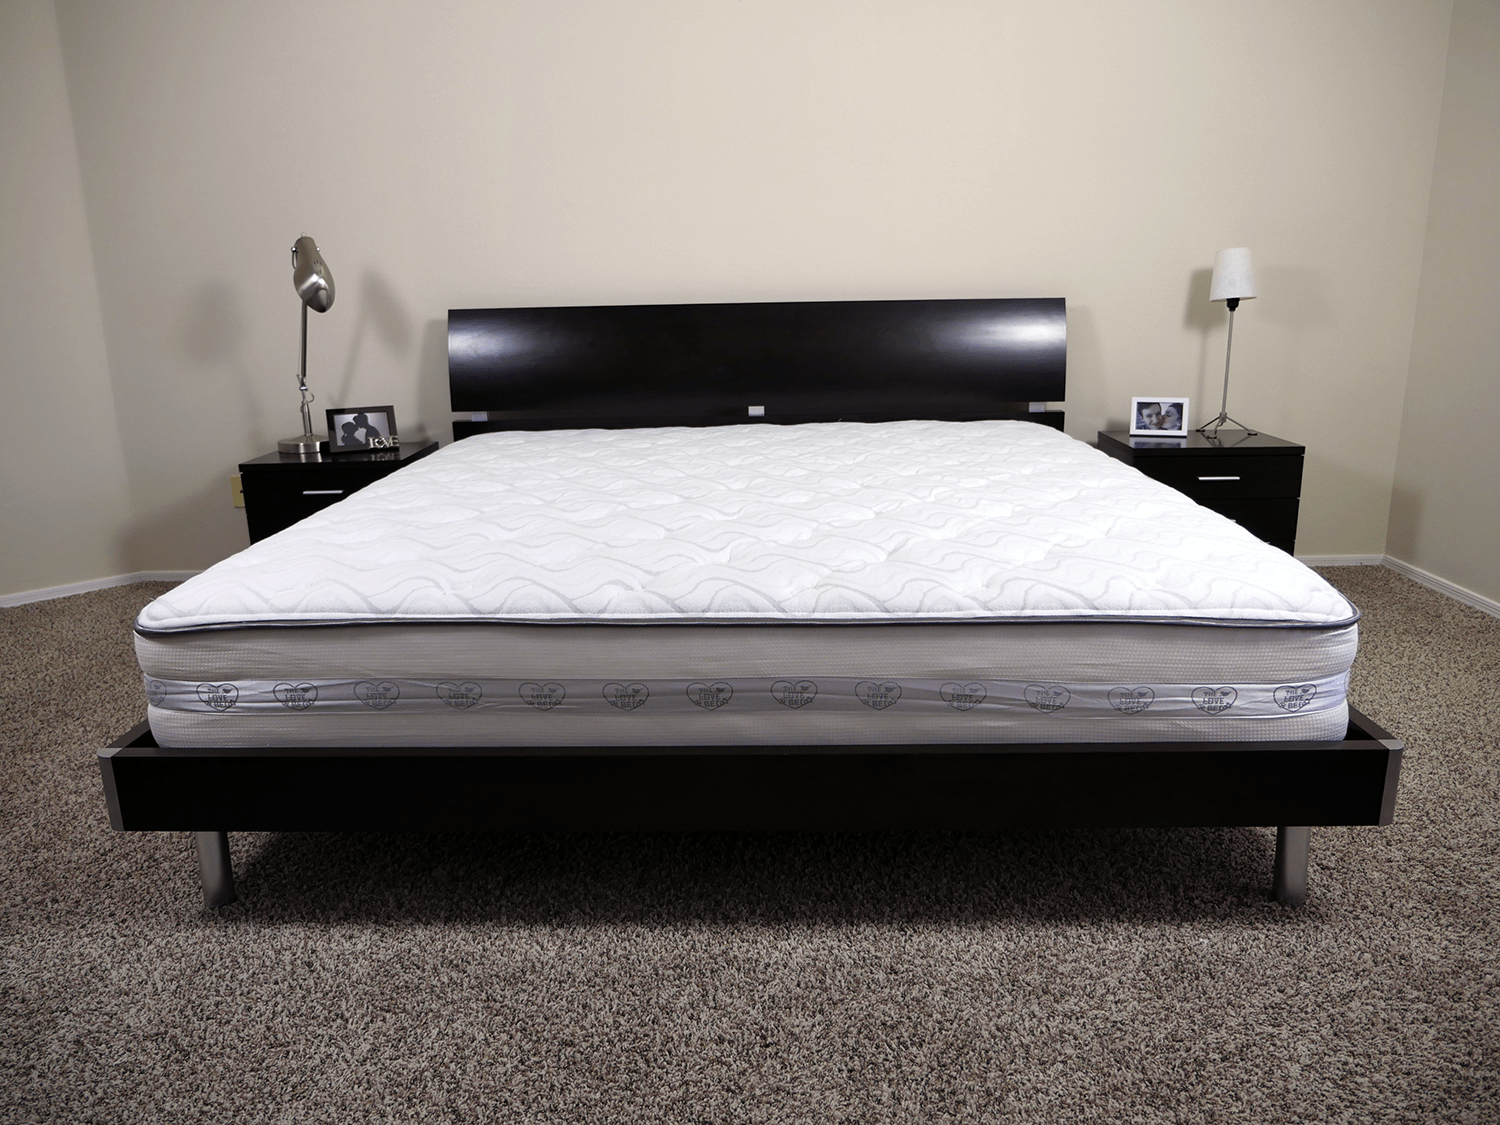 Nest Love Bed Mattress Review Sleepopolis